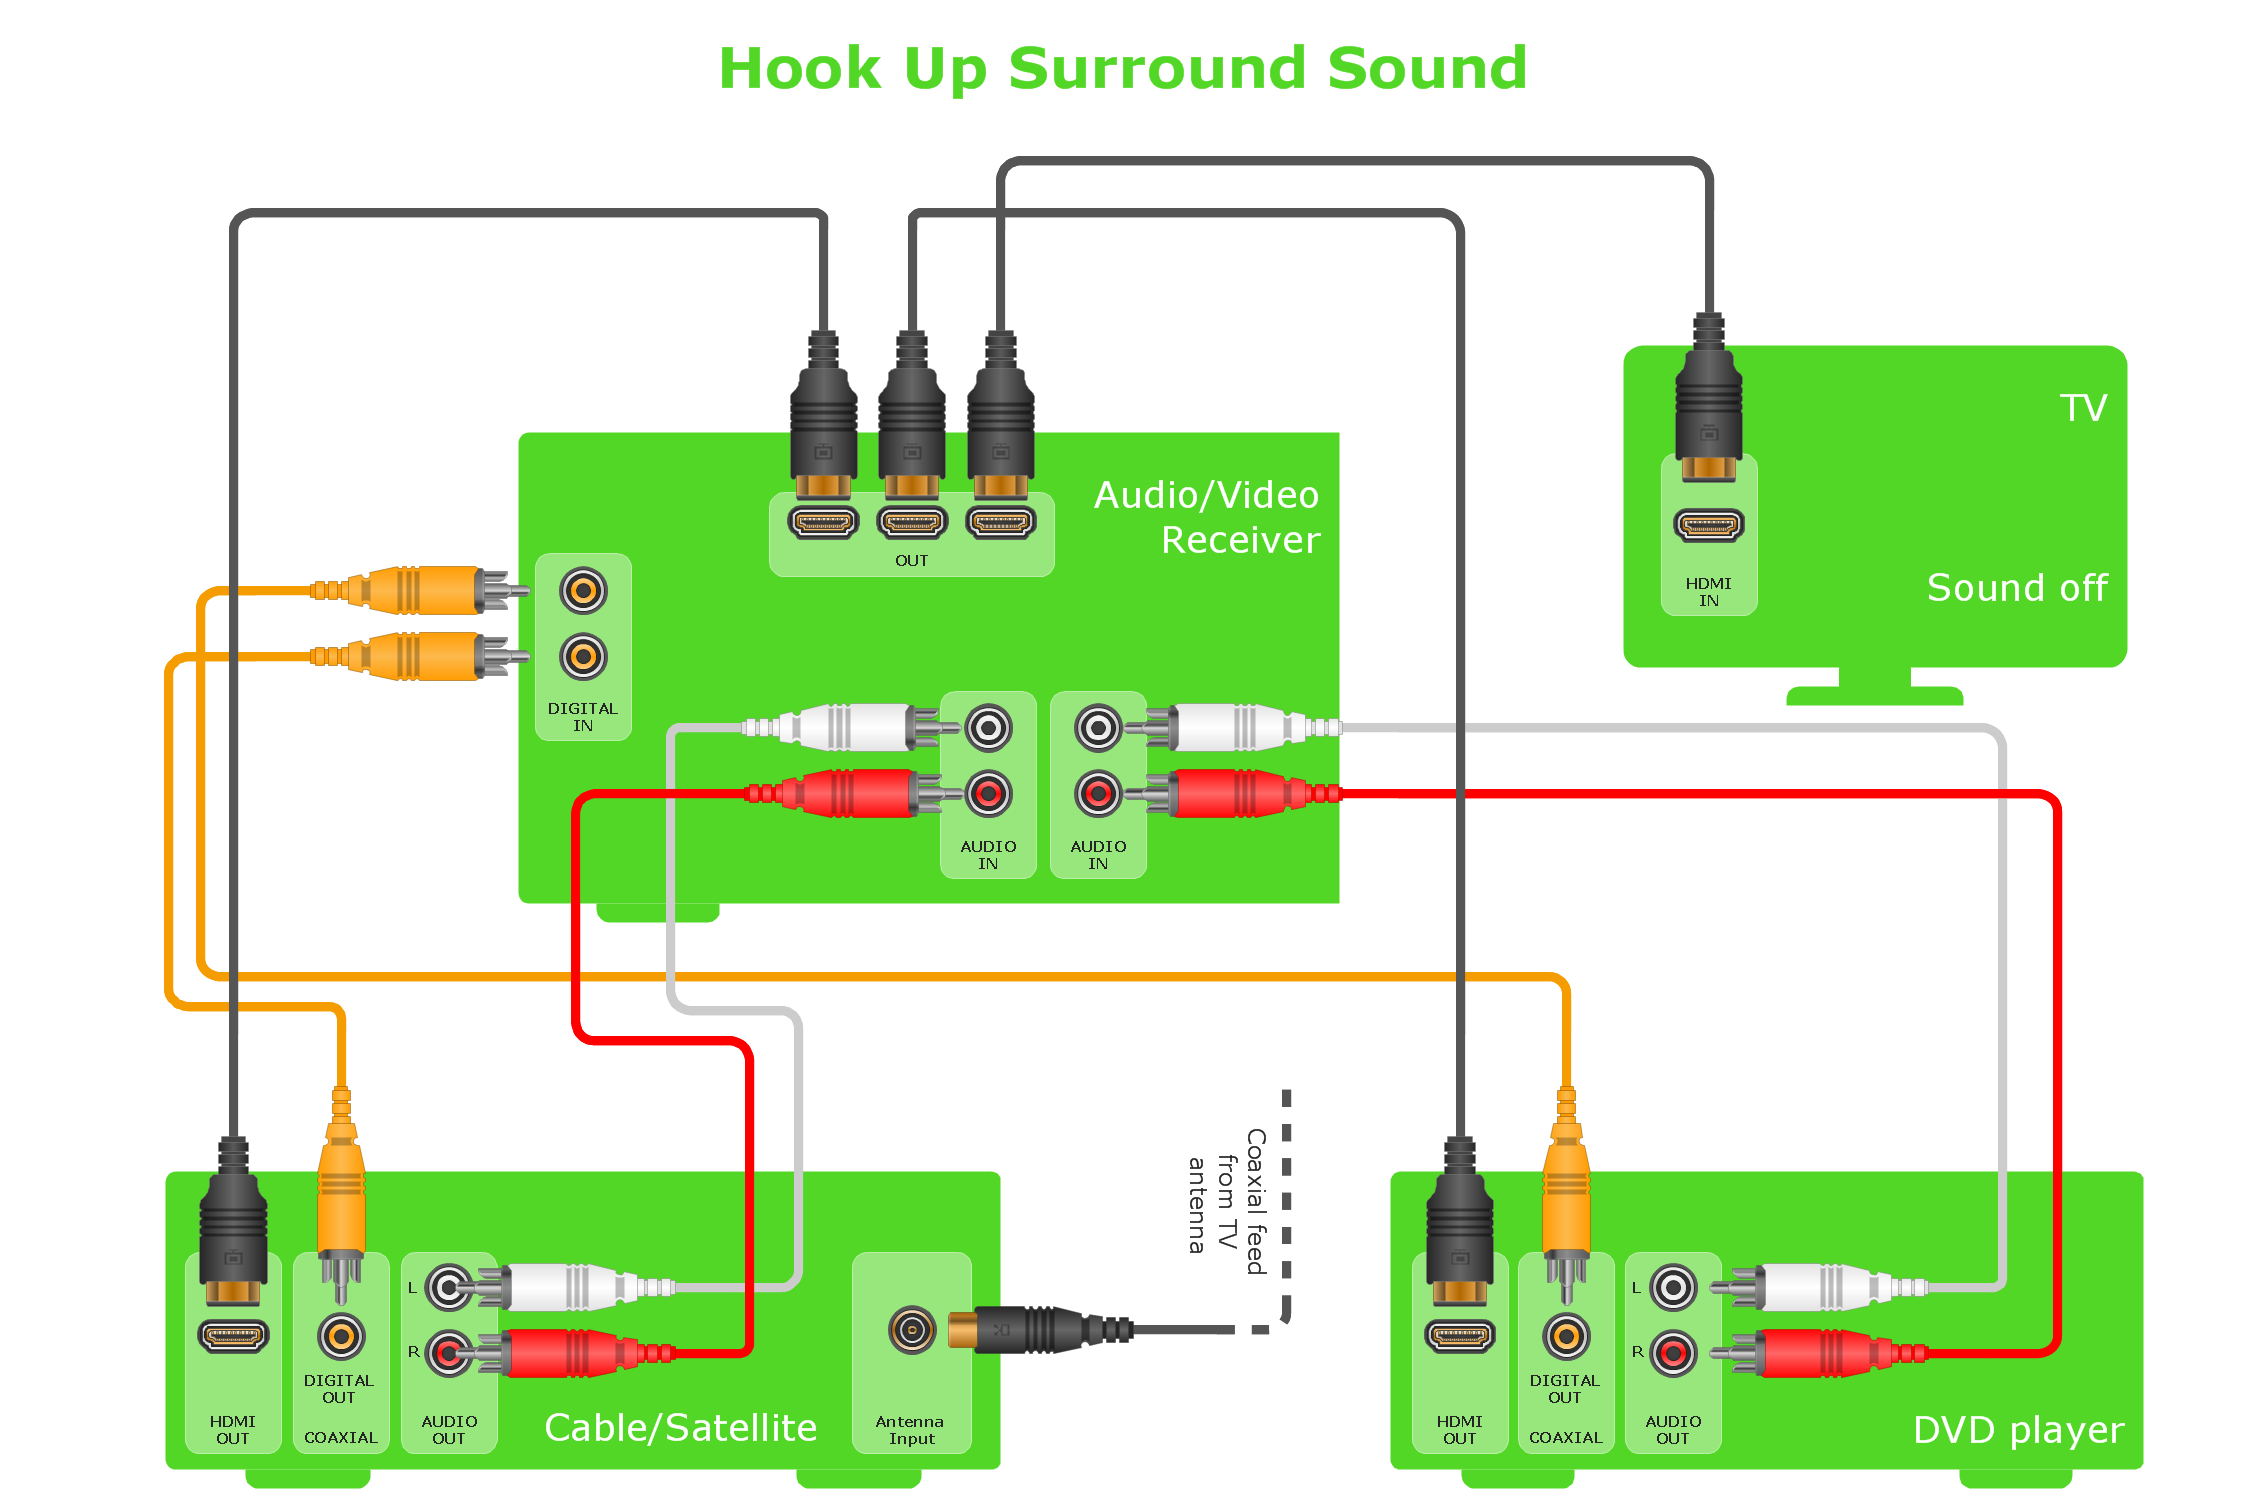 surround sound hook up diagram audio and video interfaces and connectors | libraries ... sound bar hook up diagram